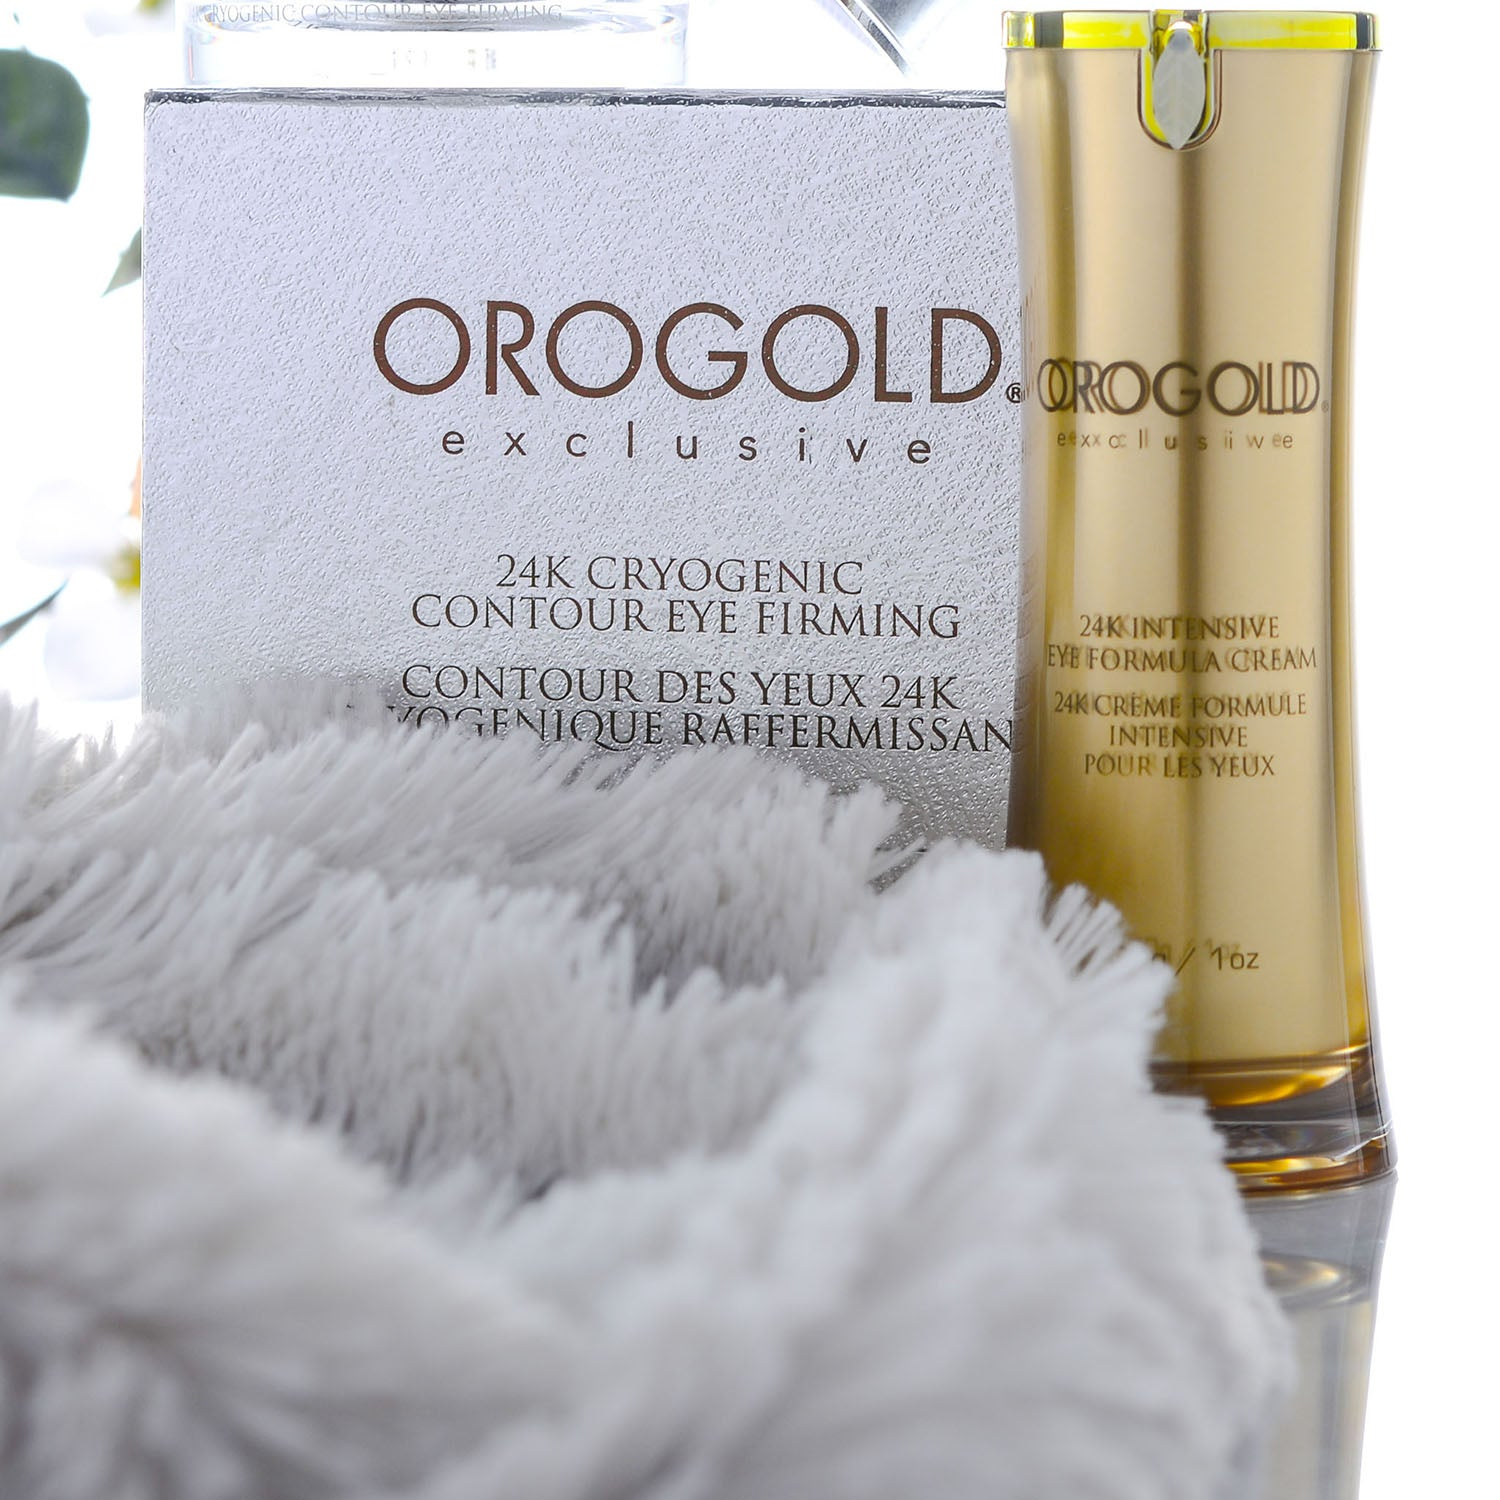 orogold 24k intensive eye serum for under eye wrinkles